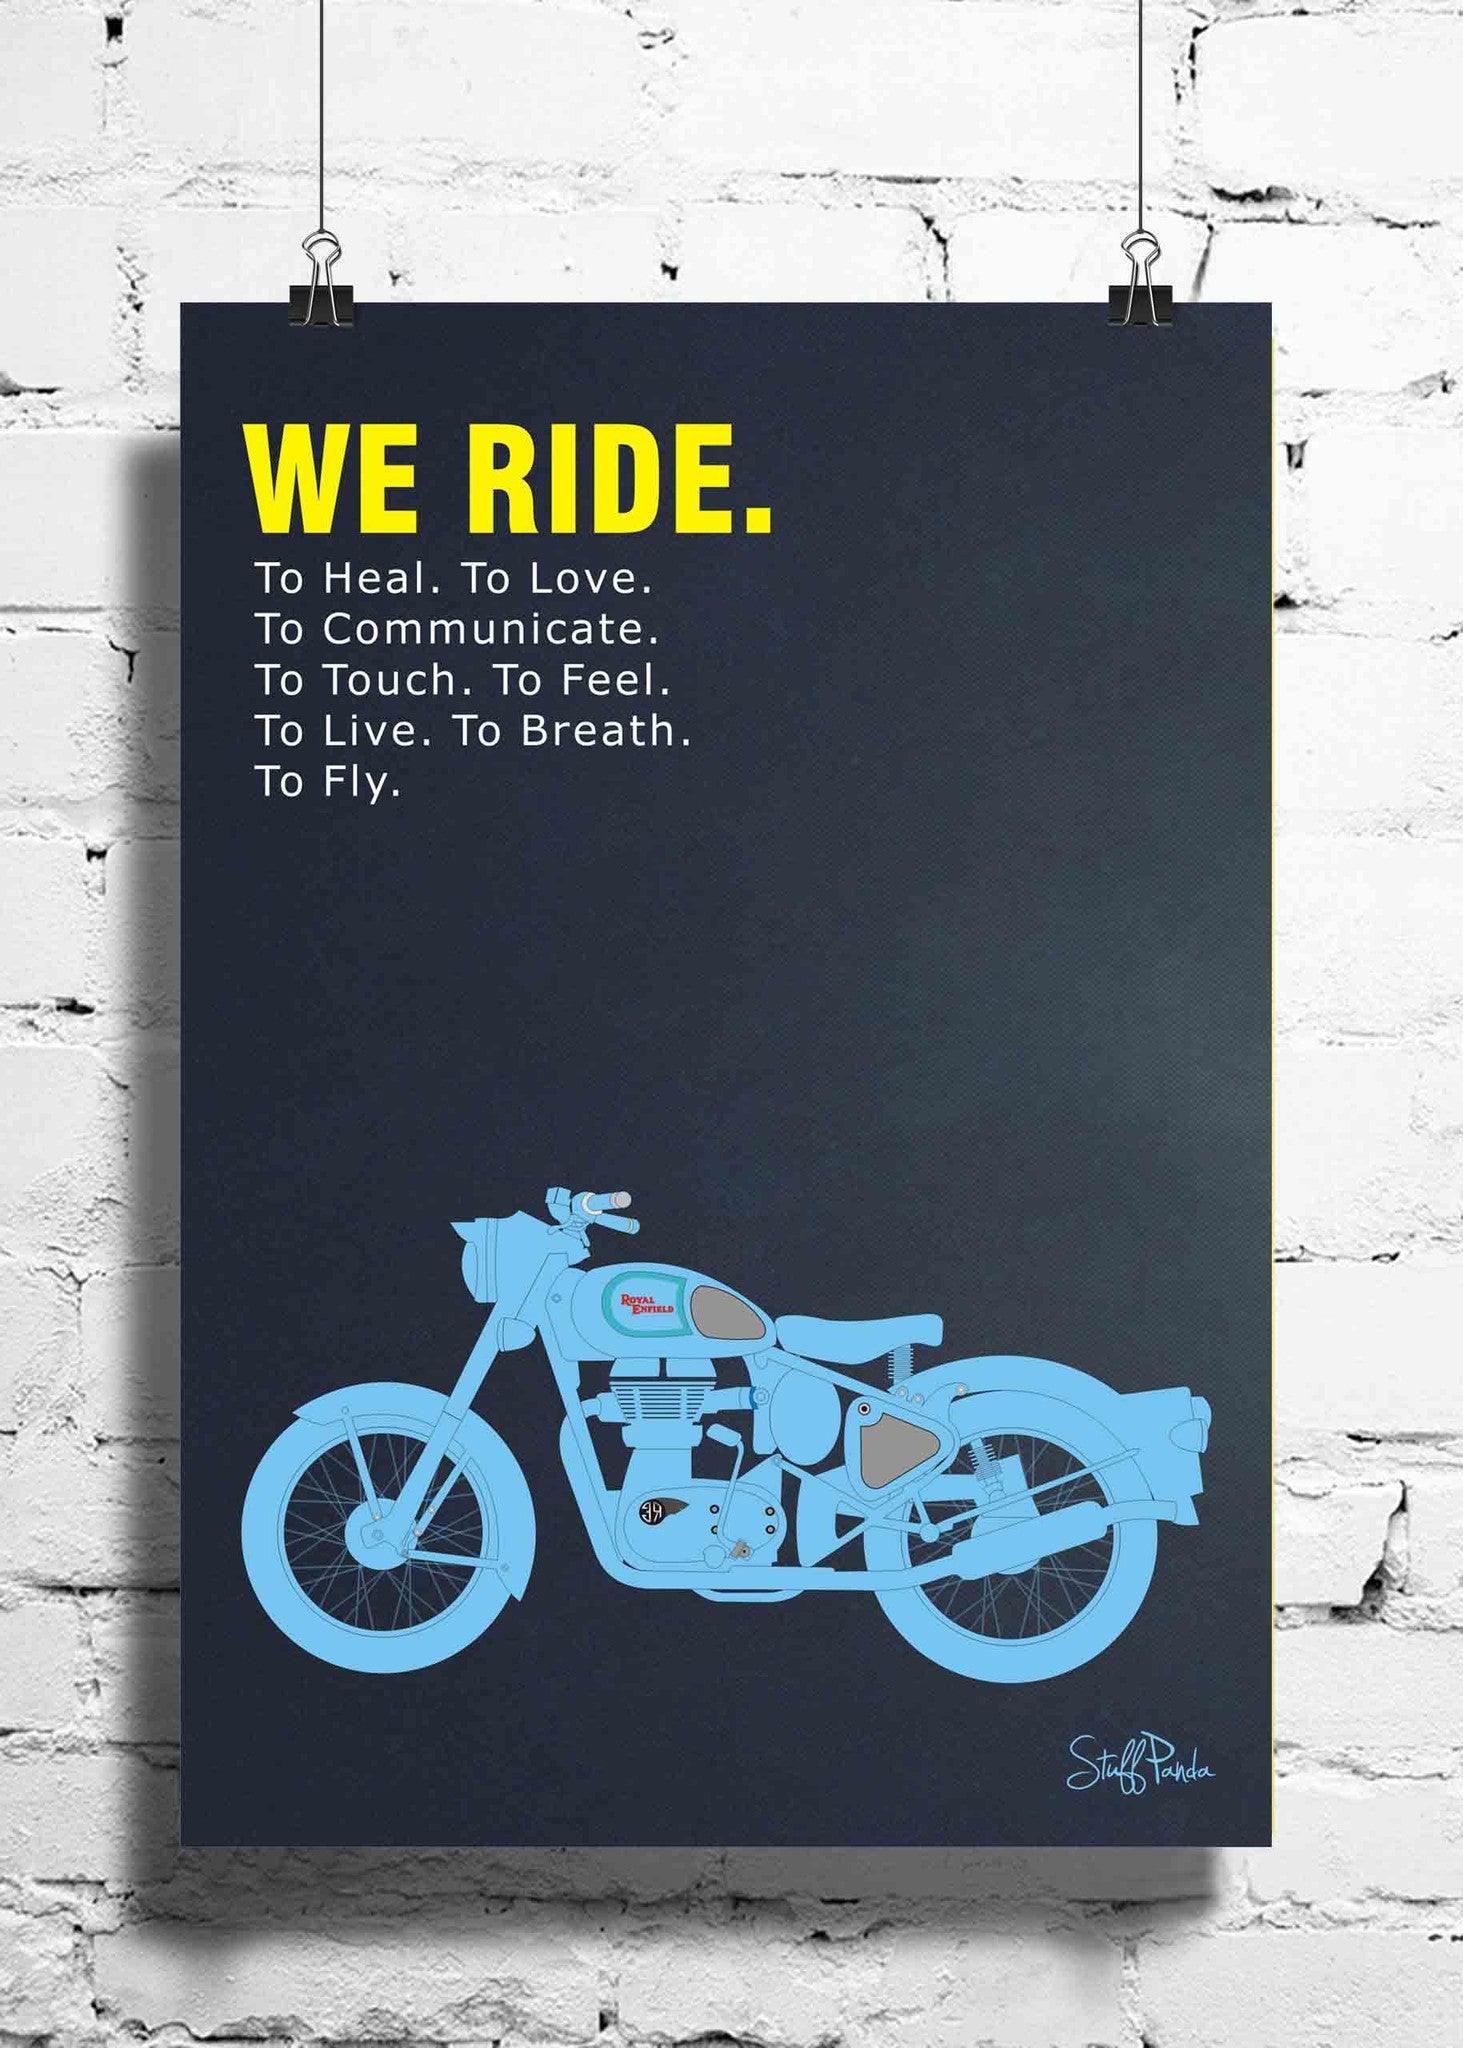 Cool Funky Abstract Royal Bullet Bike wall posters, art prints, stickers decals - stuffpanda - 1